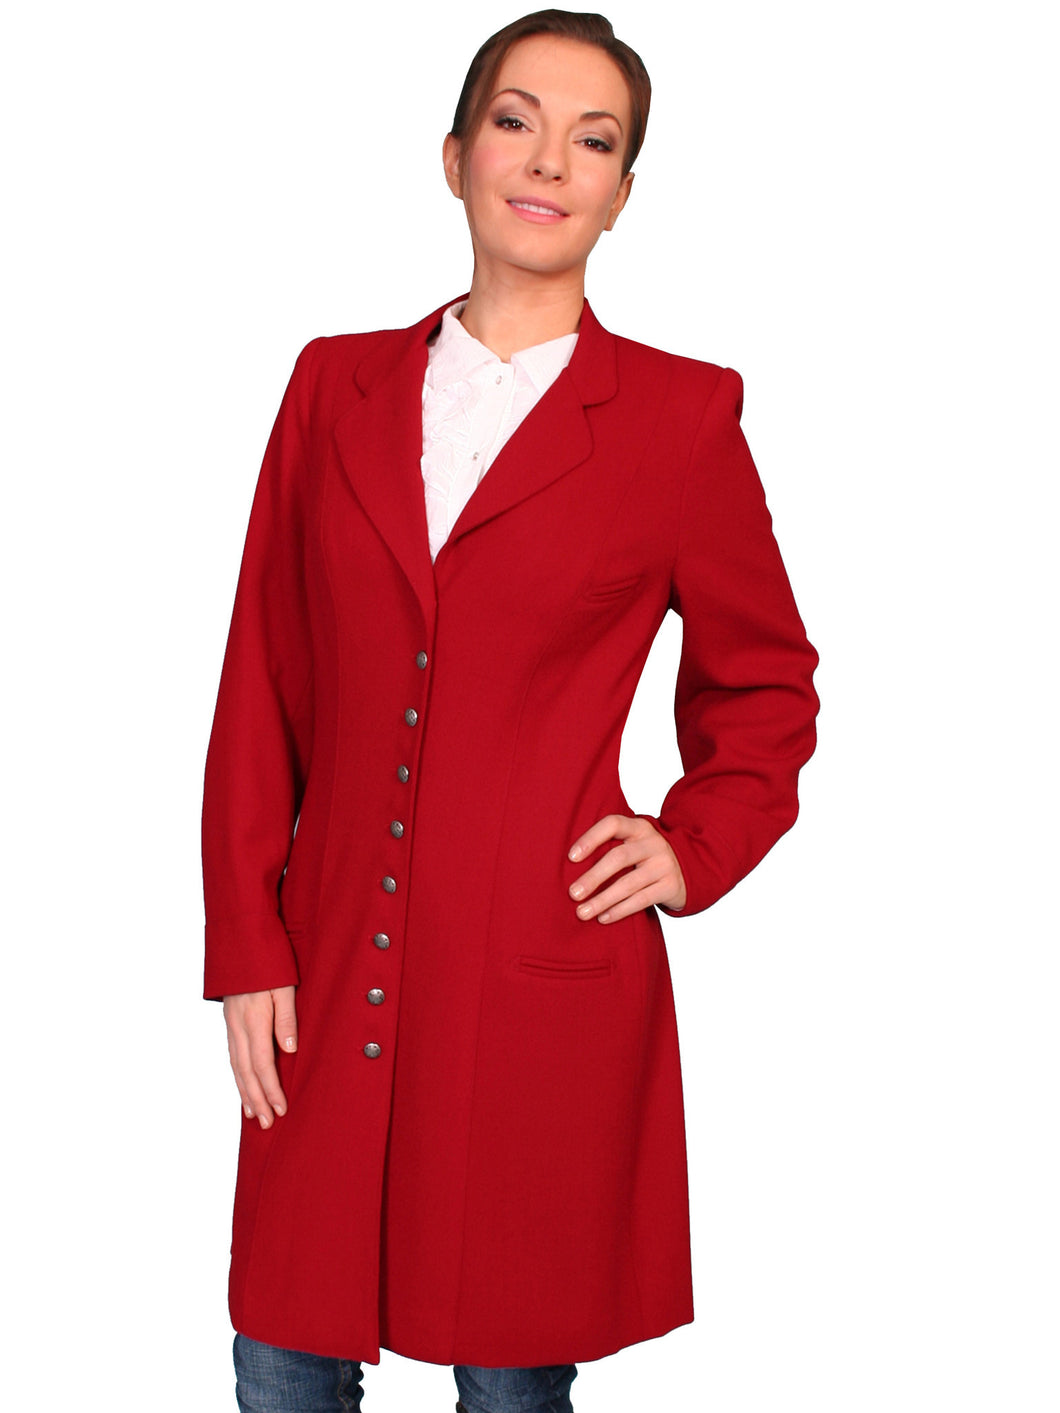 Scully 788619 Women's Vintage Styling Coat